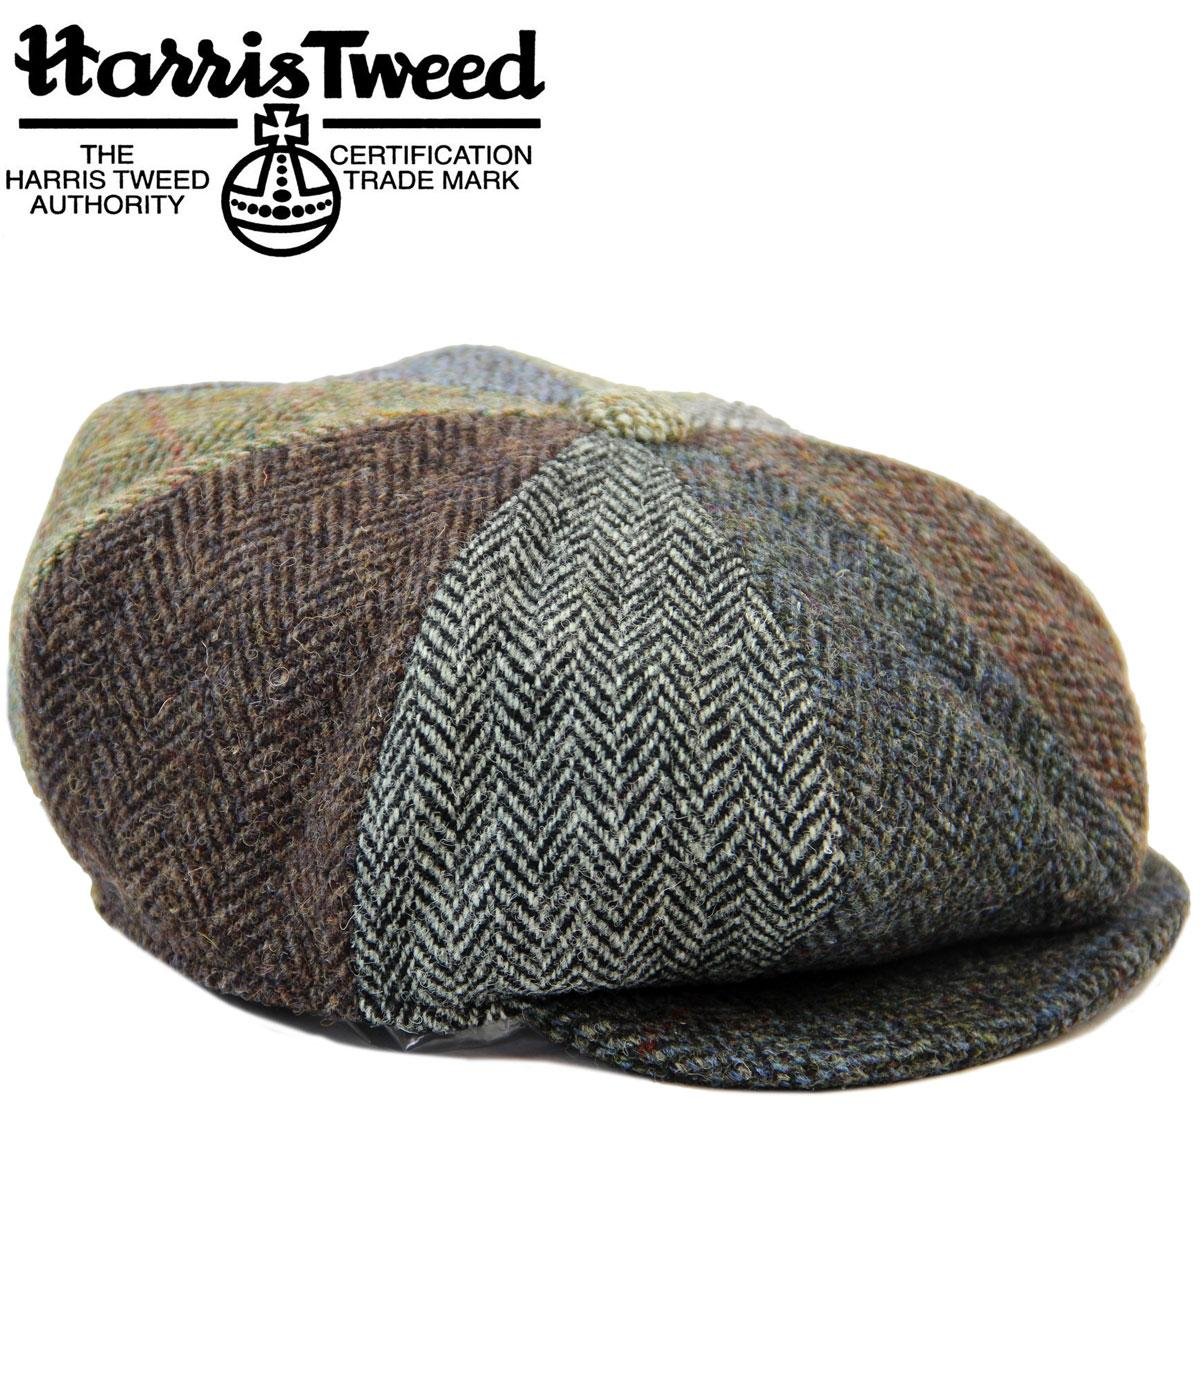 97f2510250c8b7 Lewis FAILSWORTH Harris Tweed 8 Panel Retro Newsboy Baker Boy Cap